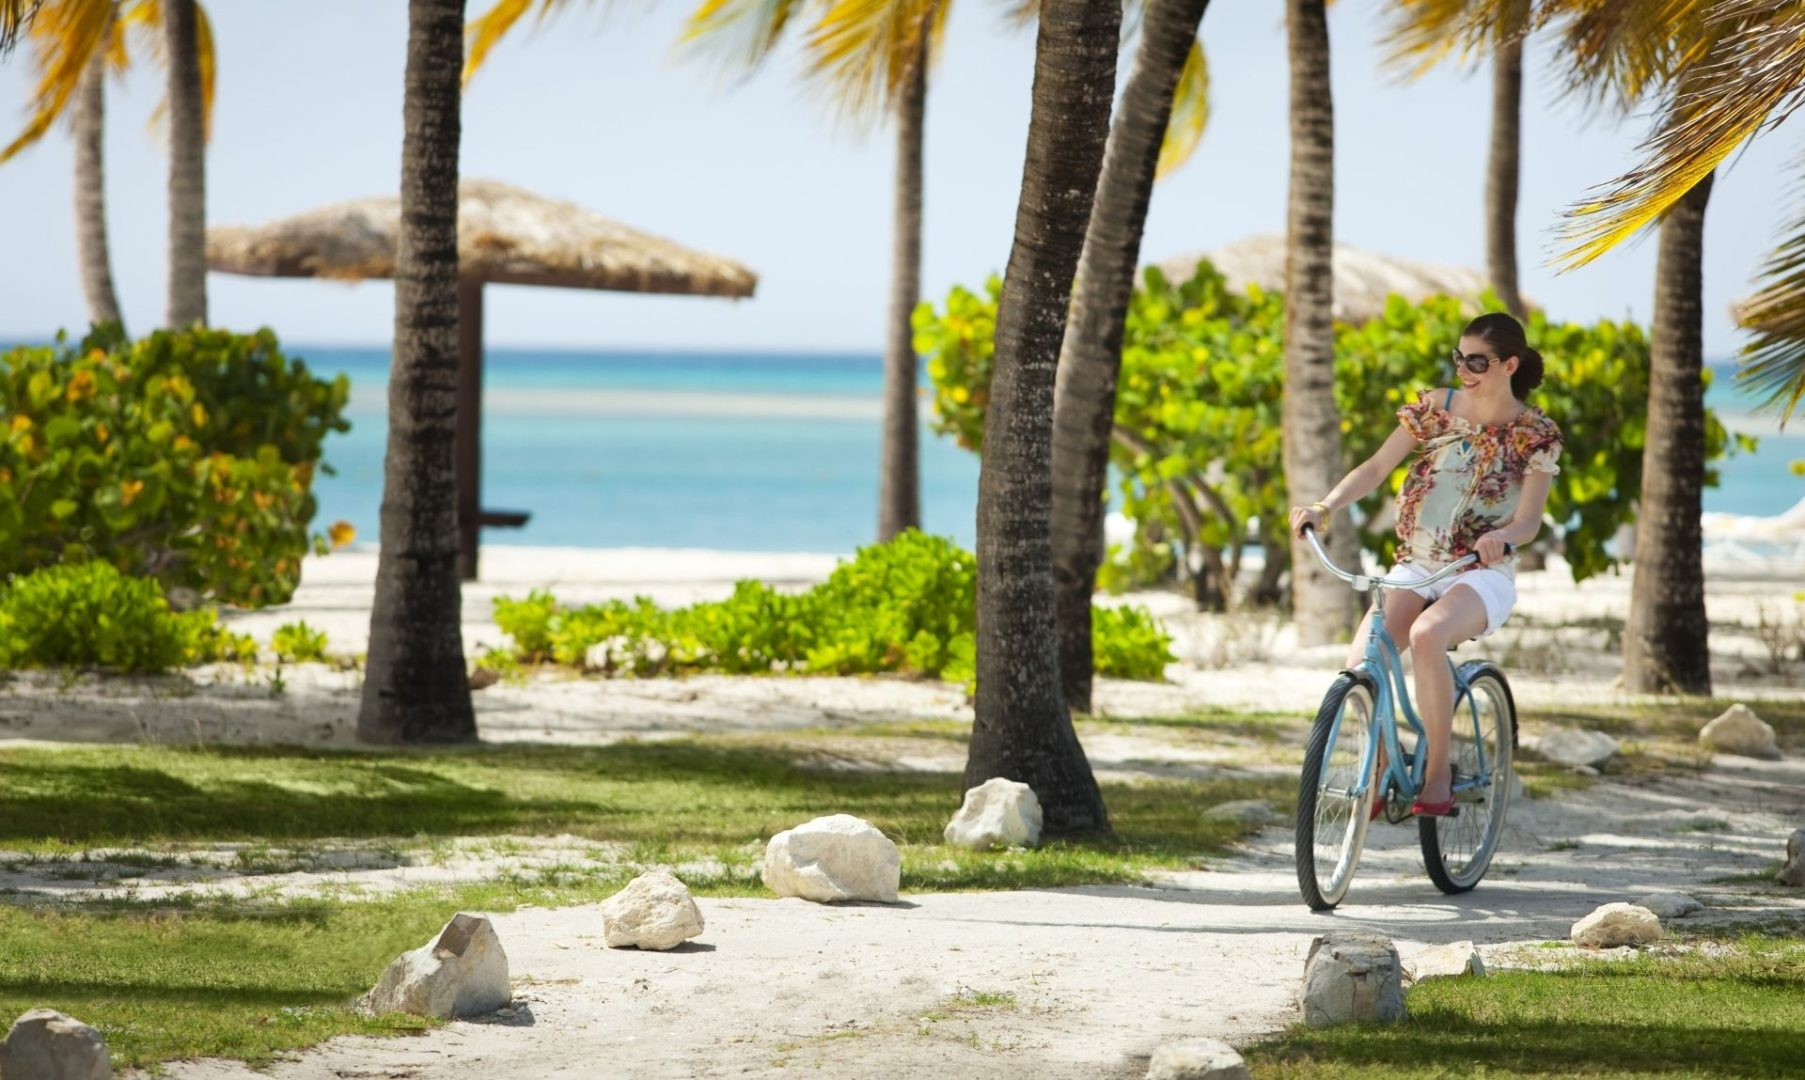 Cycle freely around the island